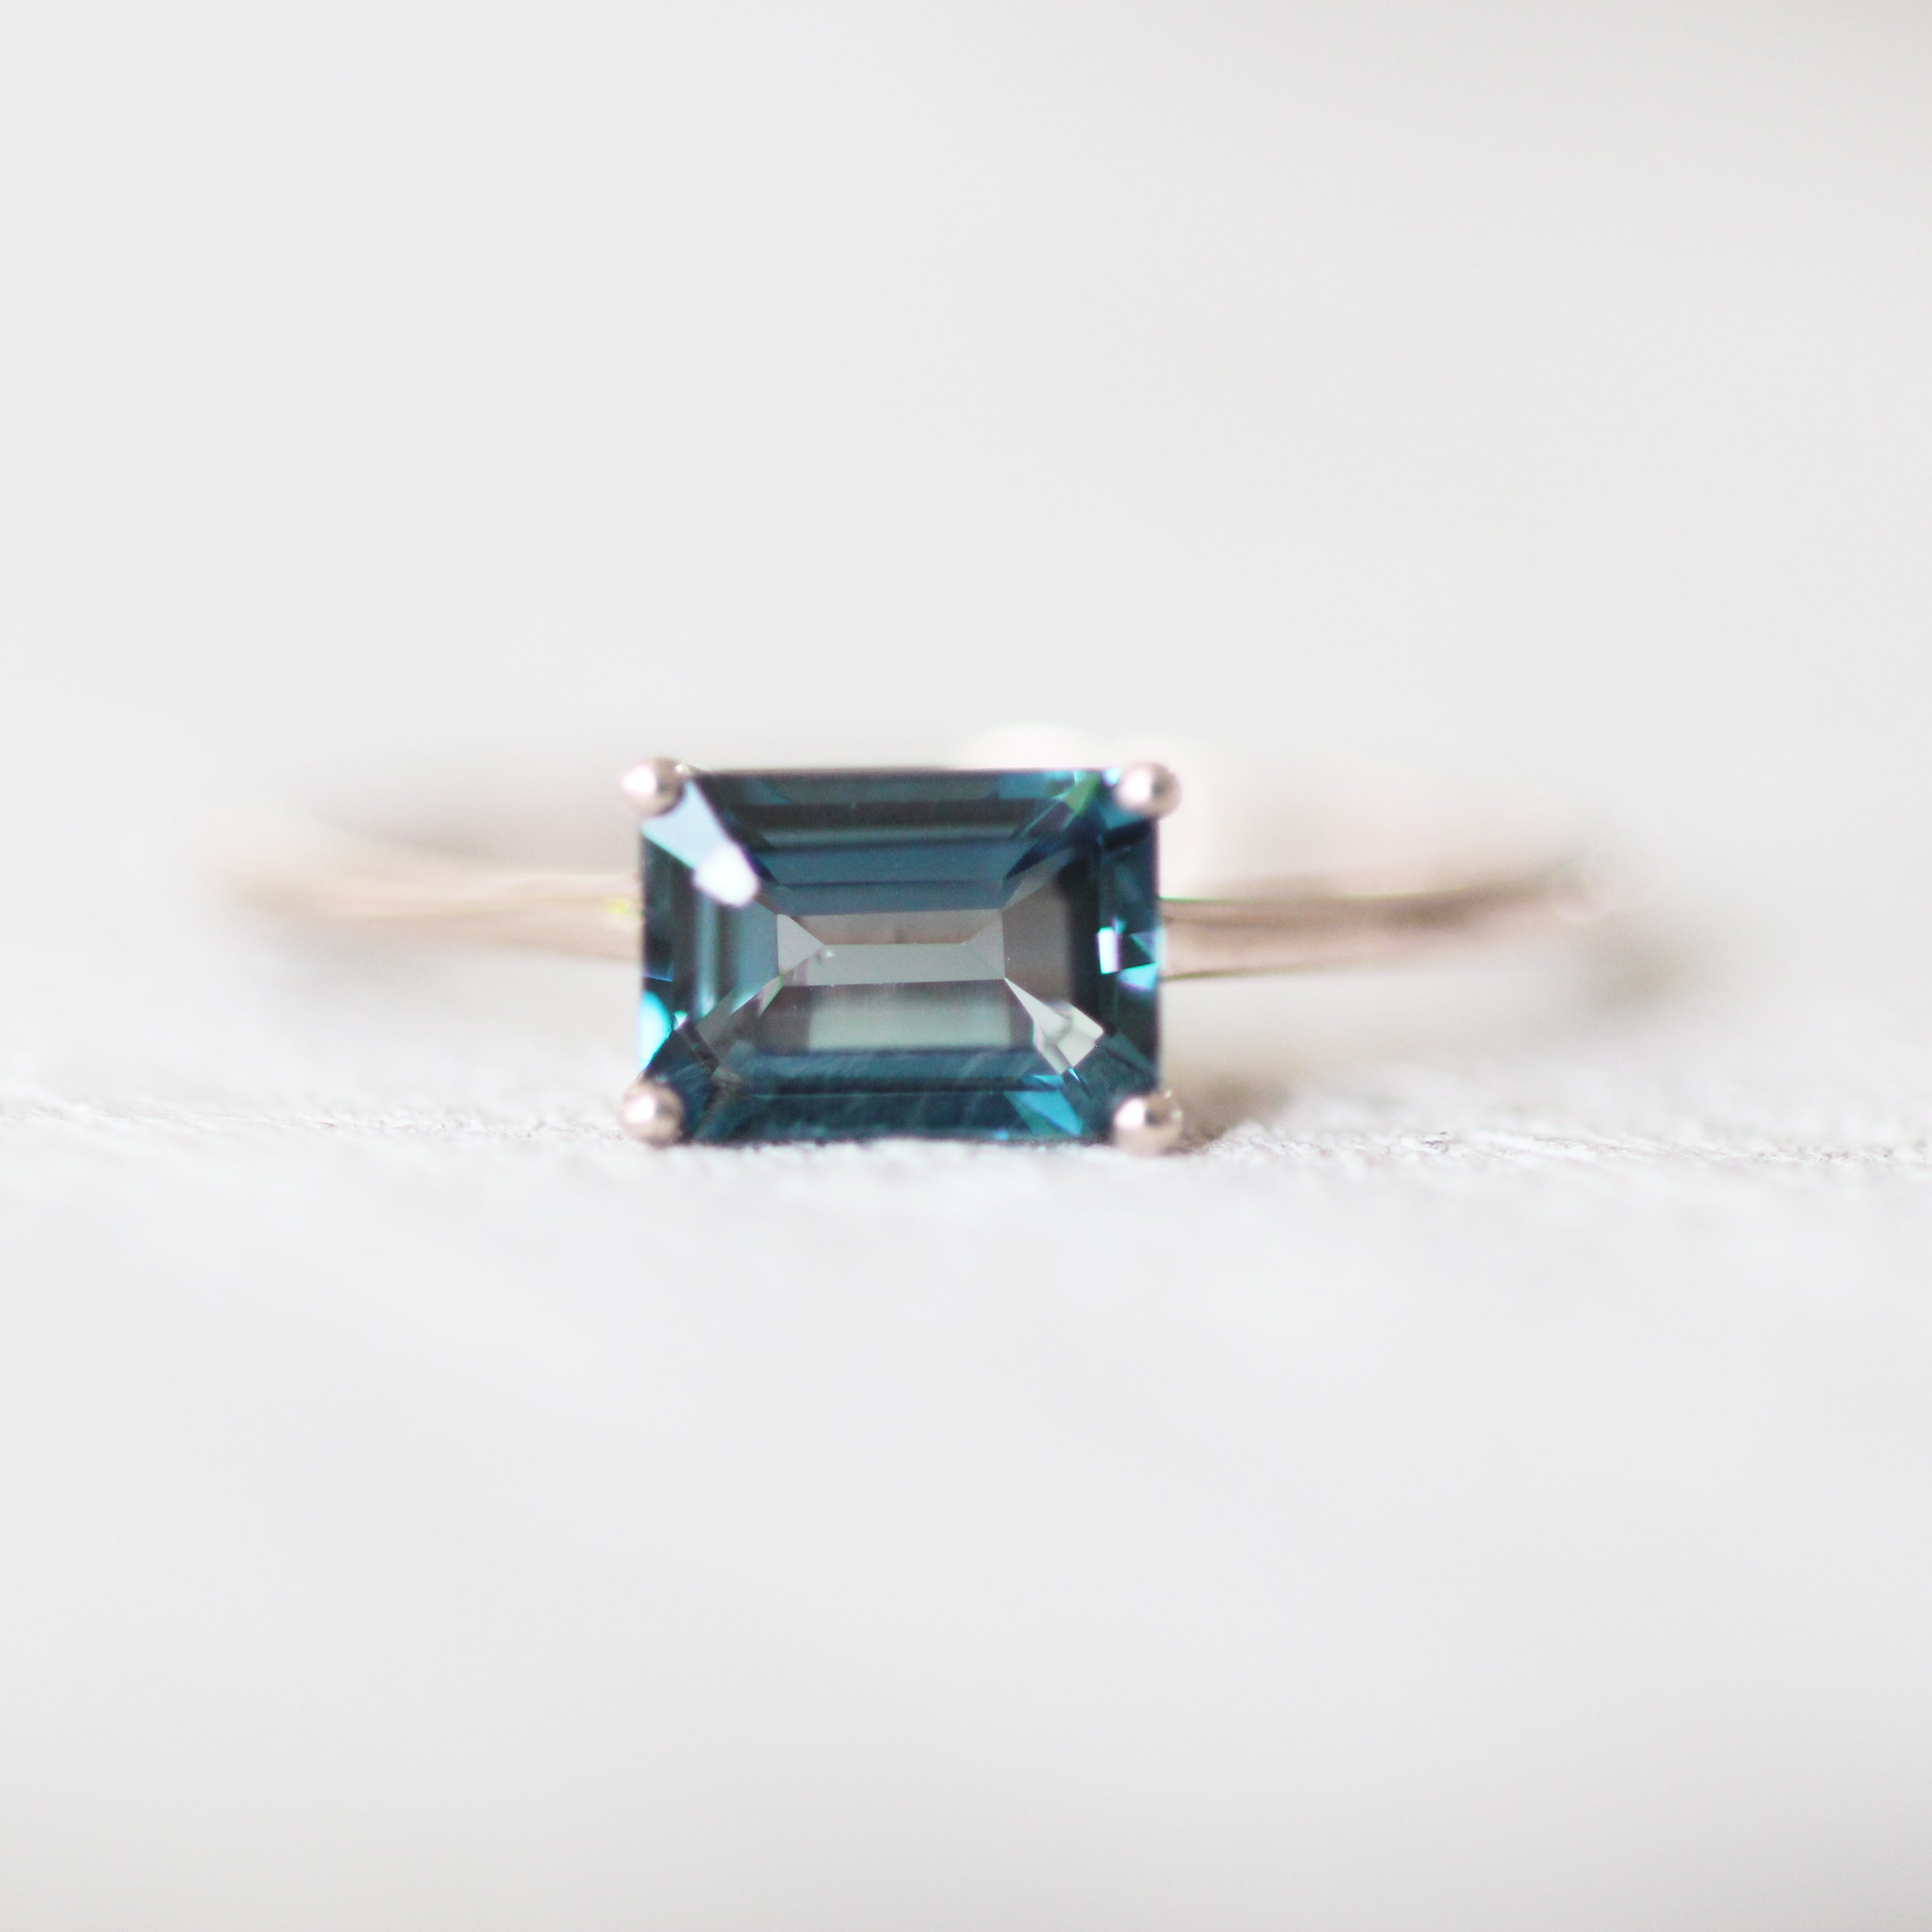 London Blue Topaz 1.3 carat Emerald Cut - Your choice of metal - Custom - Celestial Diamonds ® by Midwinter Co.